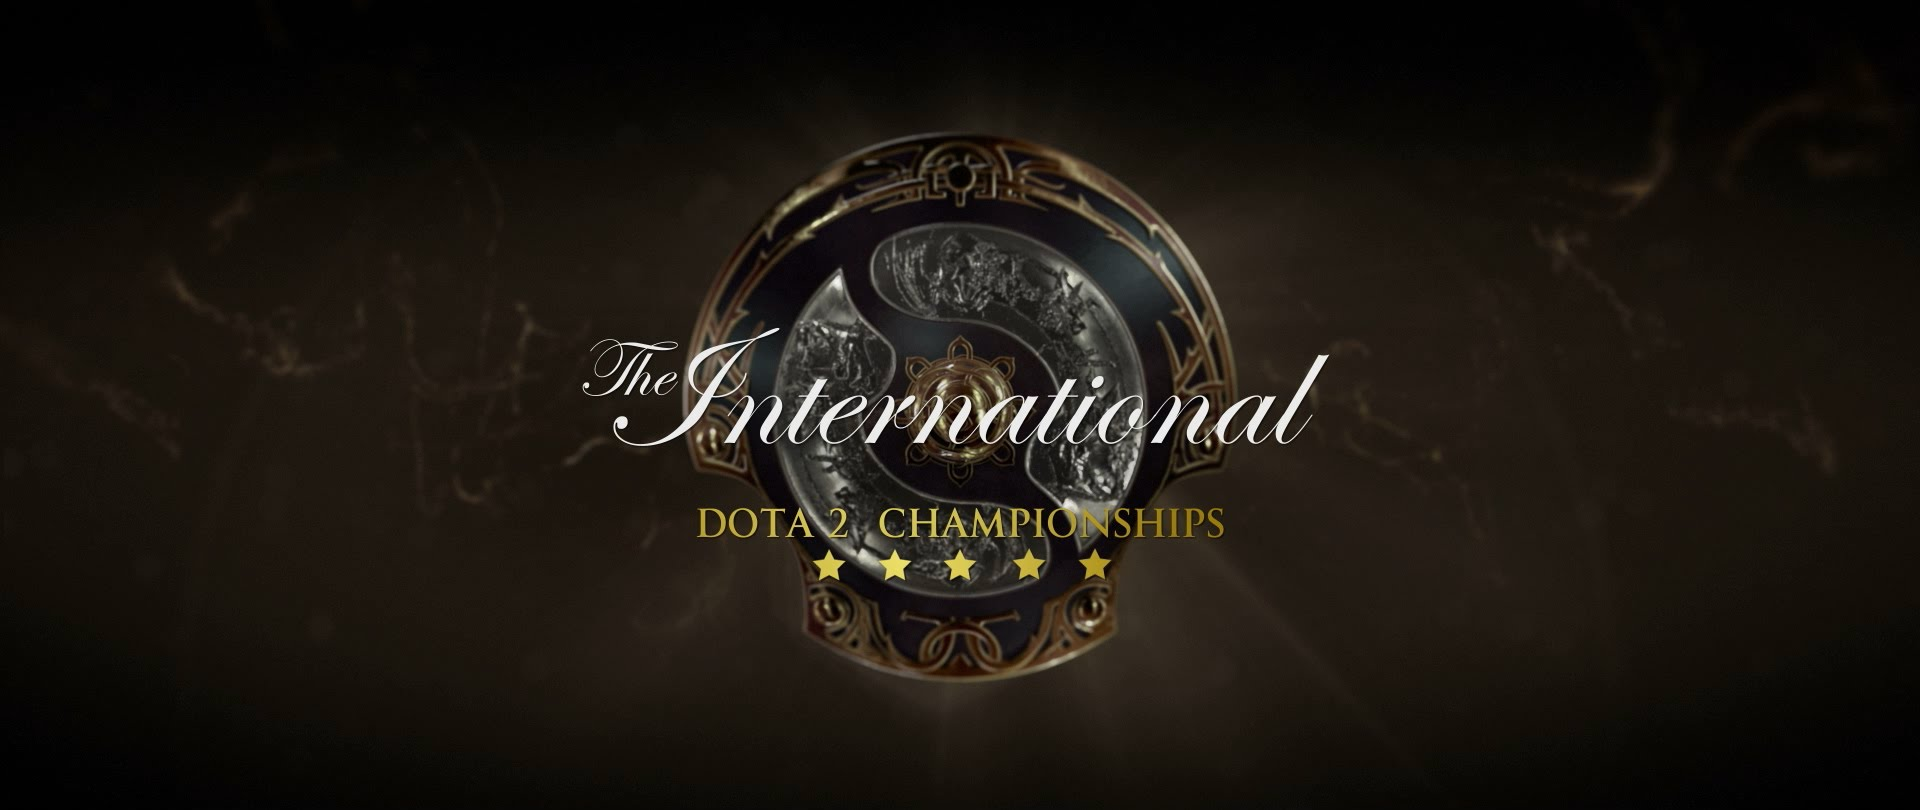 The trophy of The International. The Aegis of the immortal.